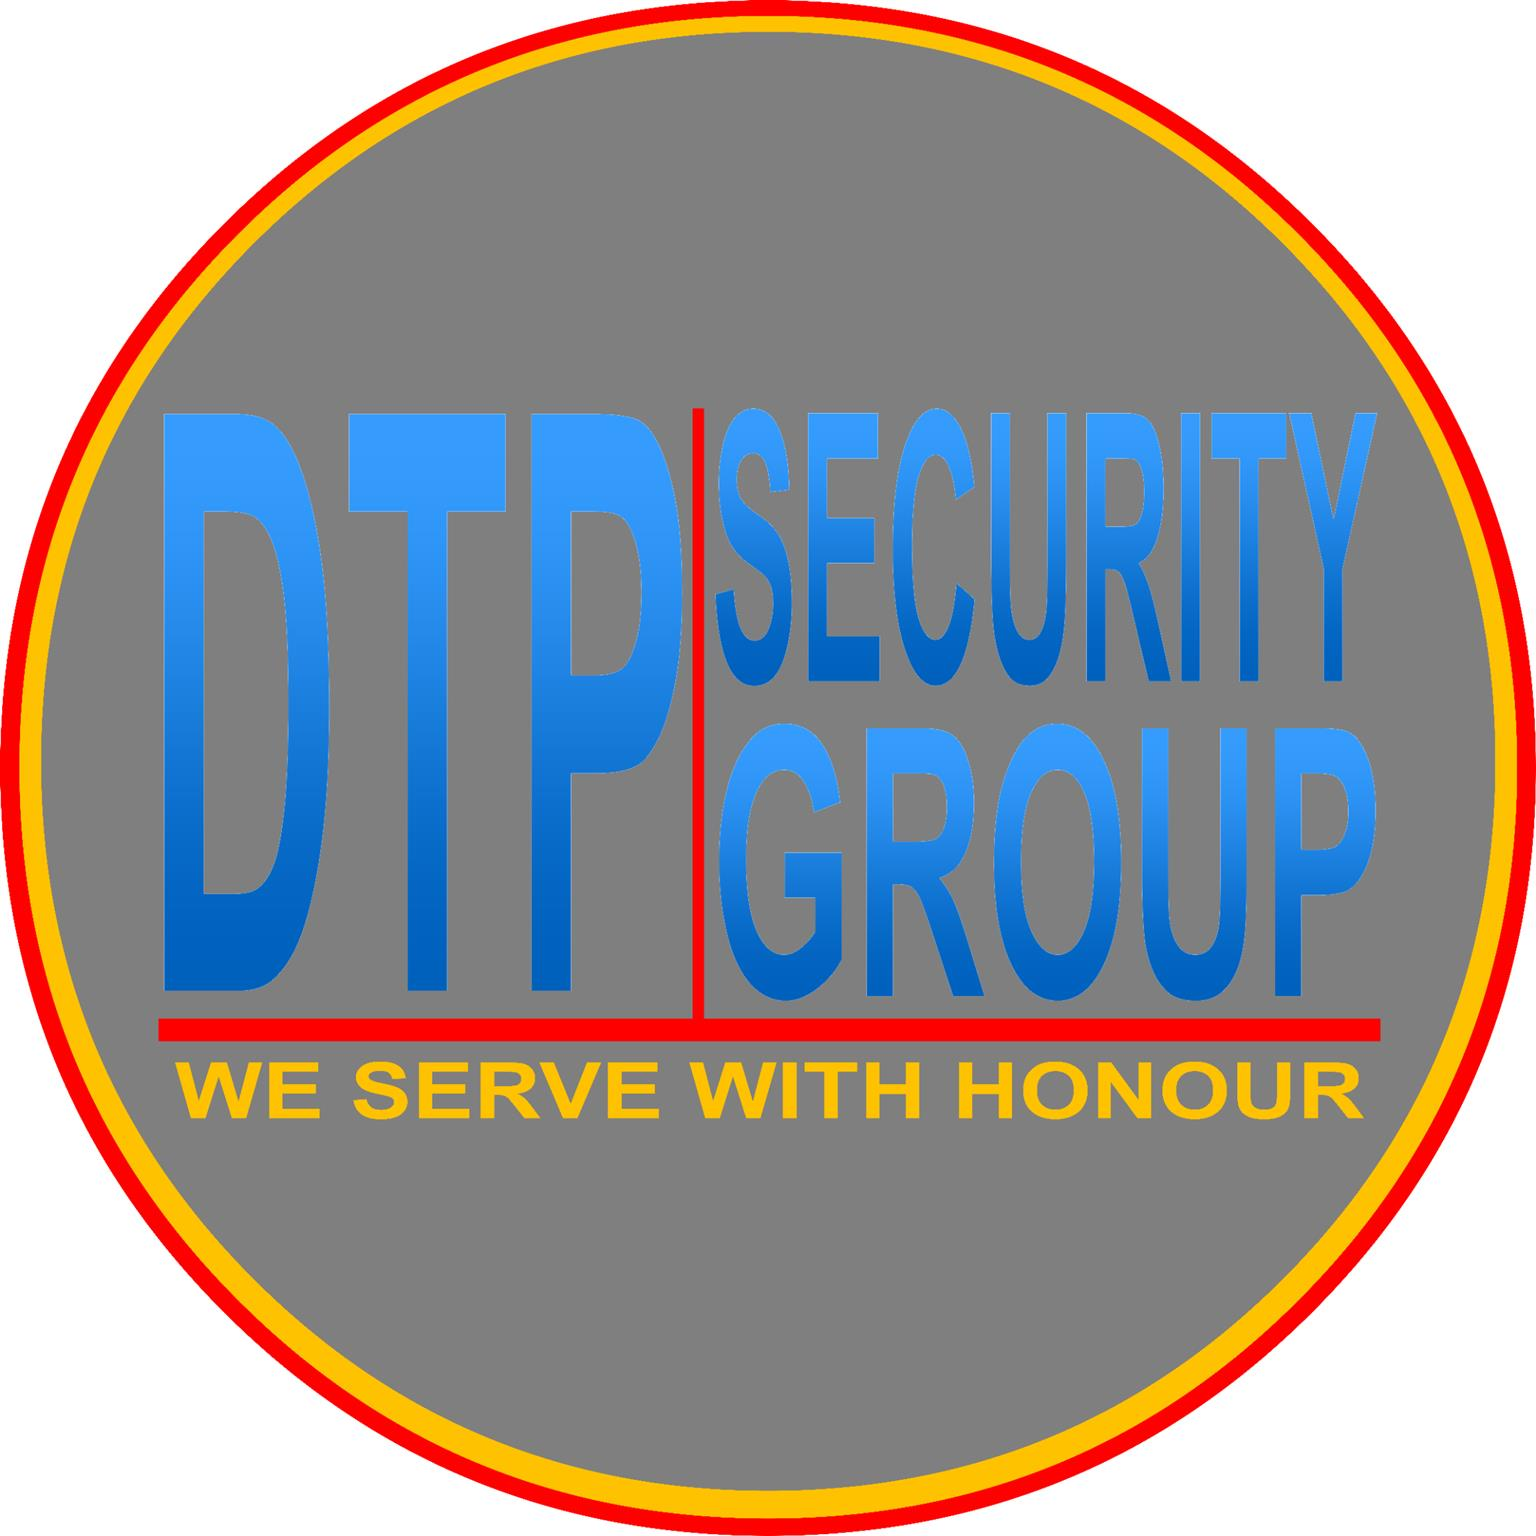 DTP SECURITY GROUP